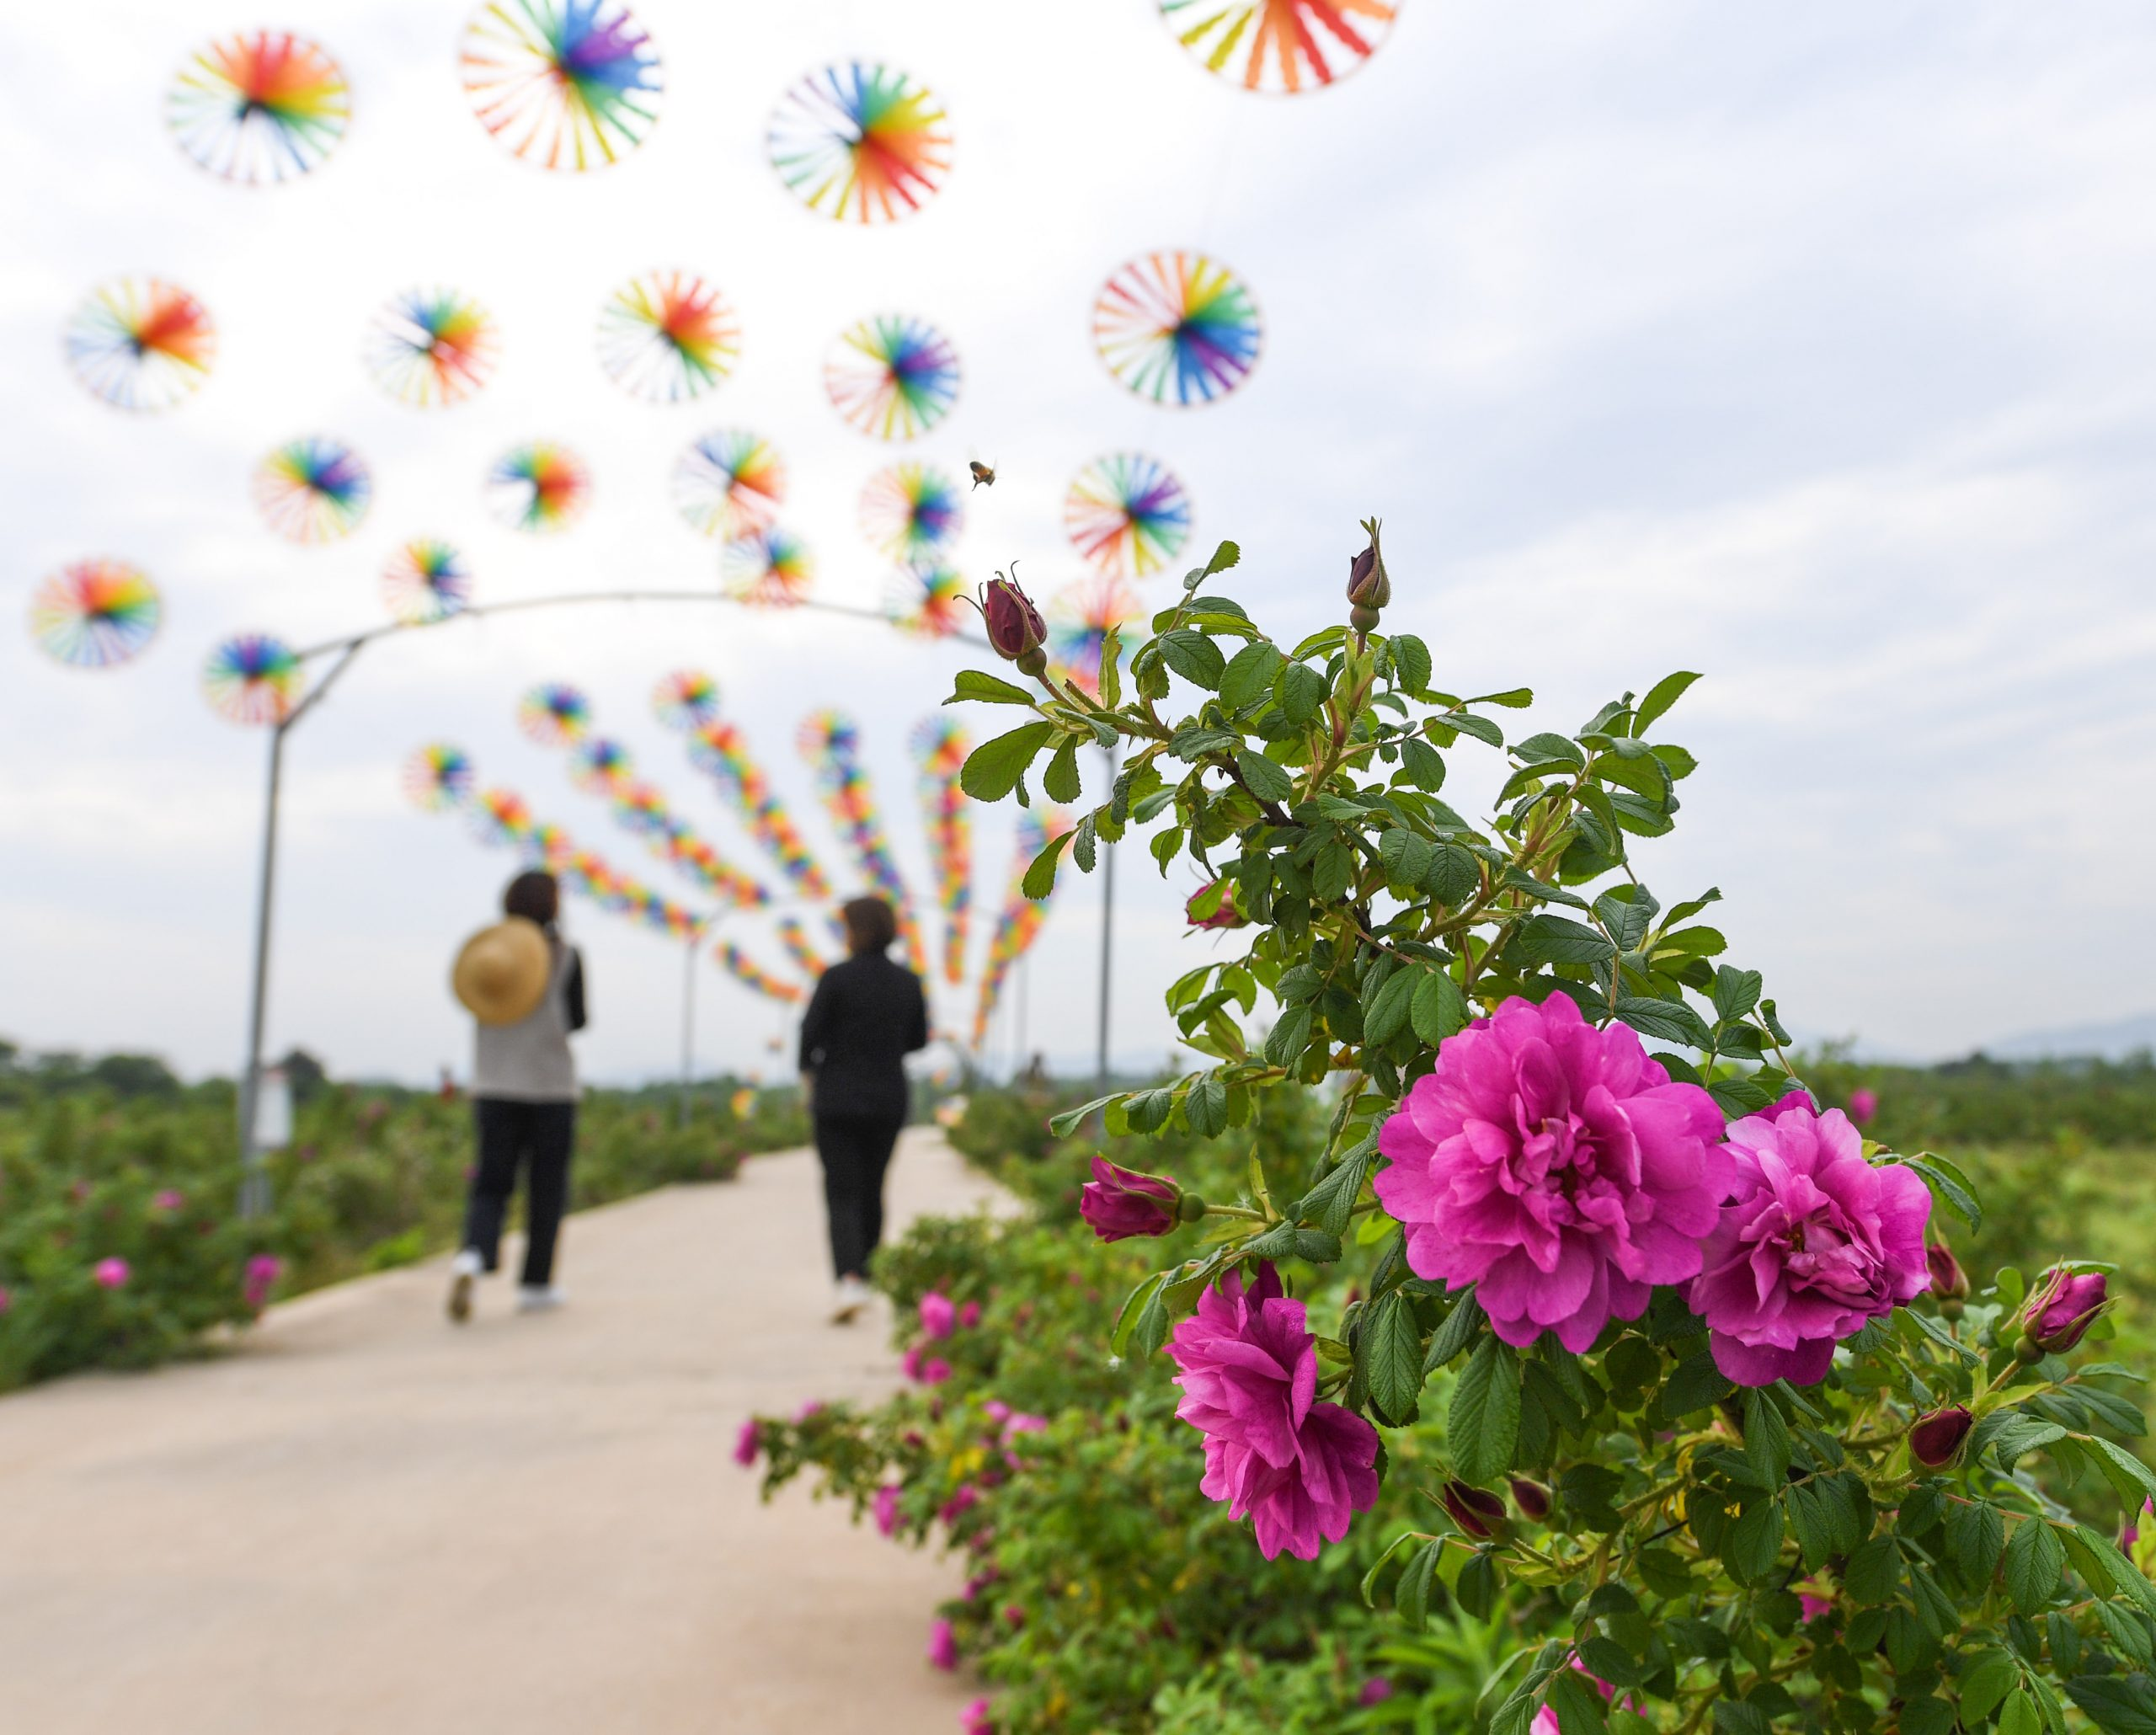 CHINA-ZHEJIANG-CHANGXING-FLOWER-DEVELOPMENT (CN)